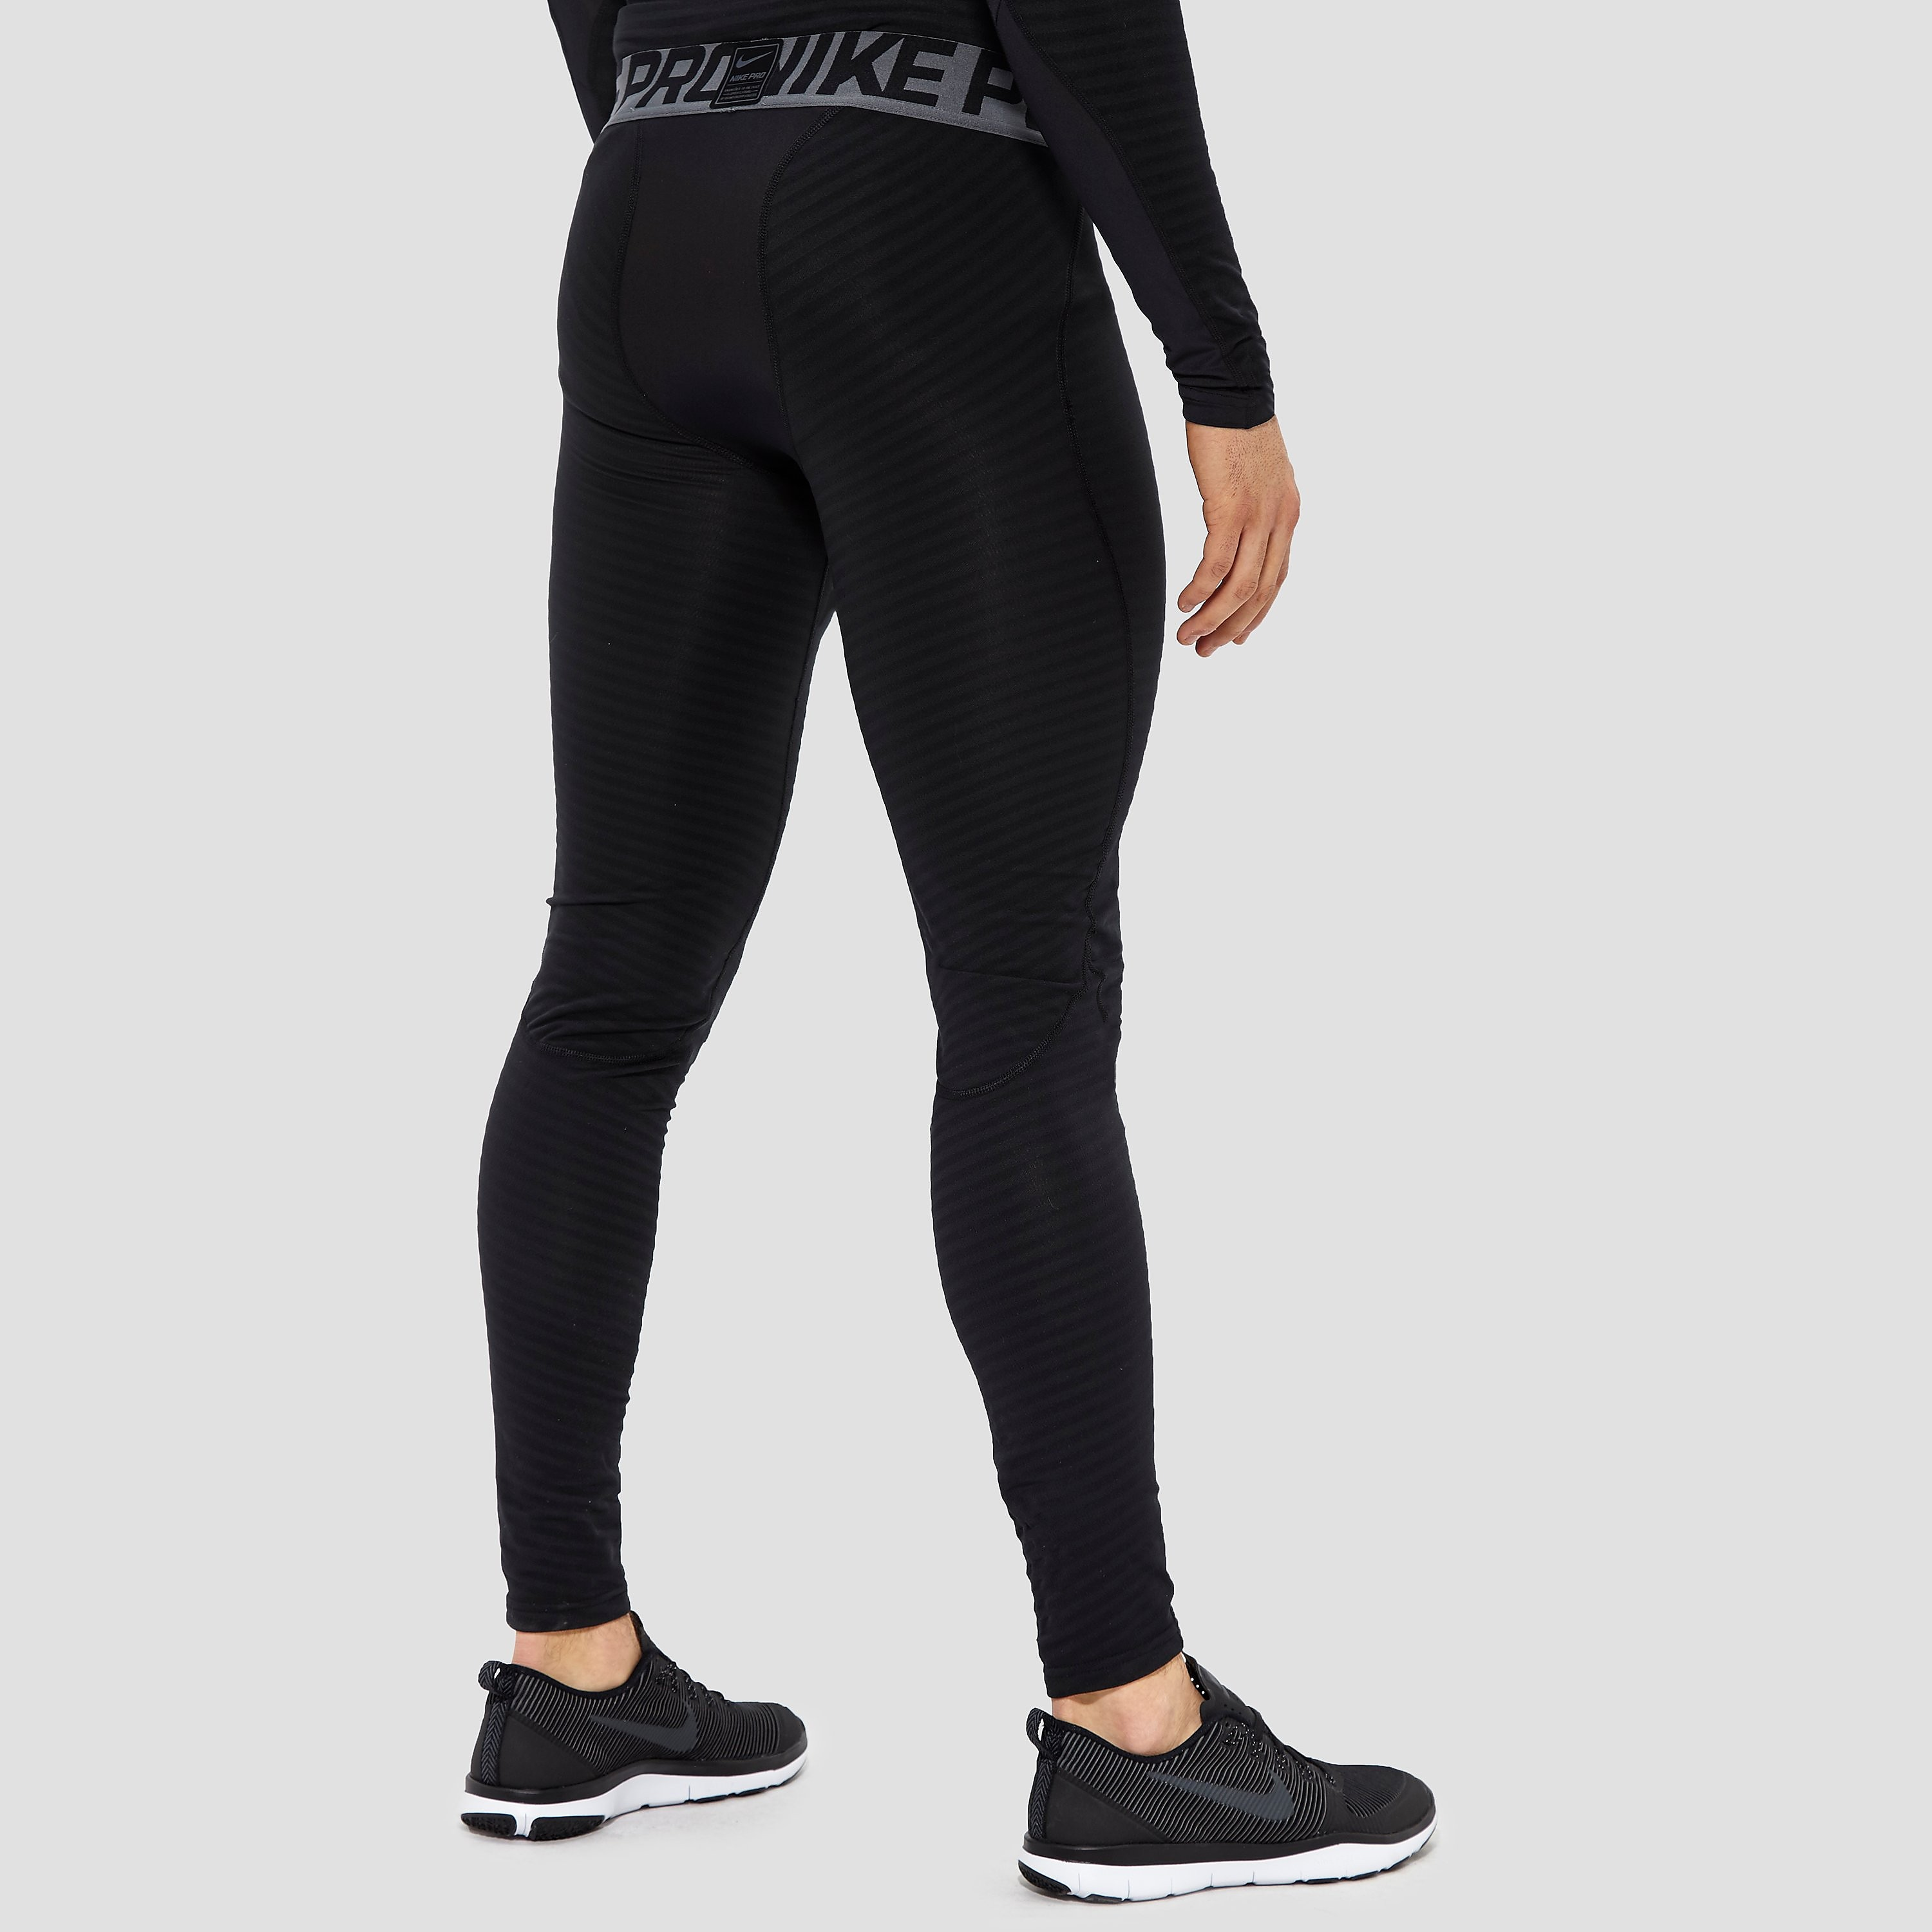 Nike Men's Pro Warm Training Tights